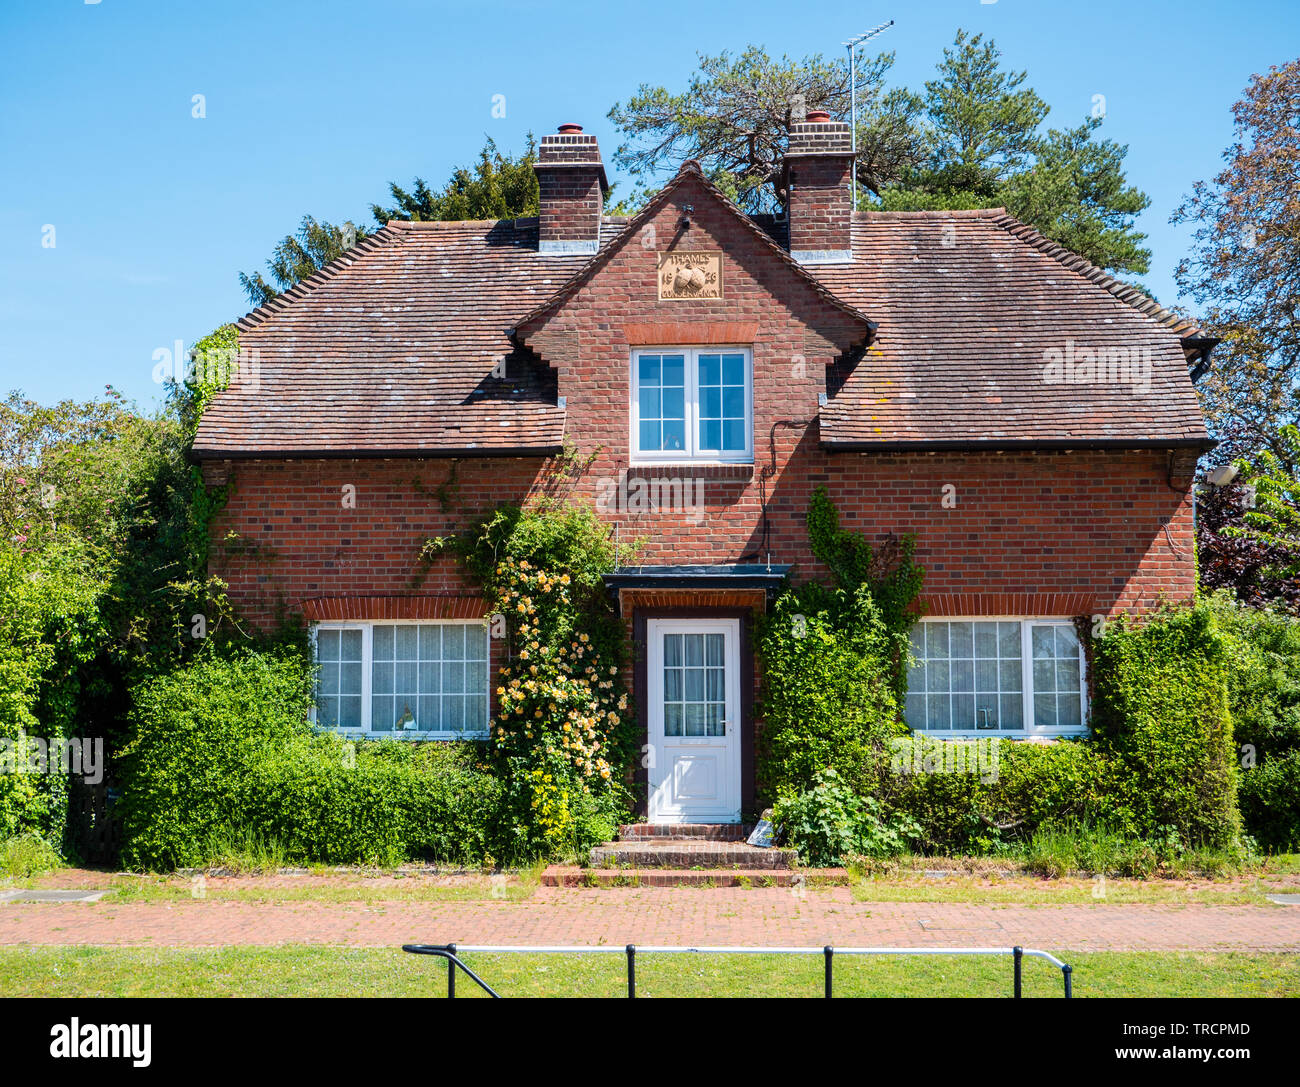 Hambleden Lock House, River Thames, Berkshire, England, UK, GB. - Stock Image